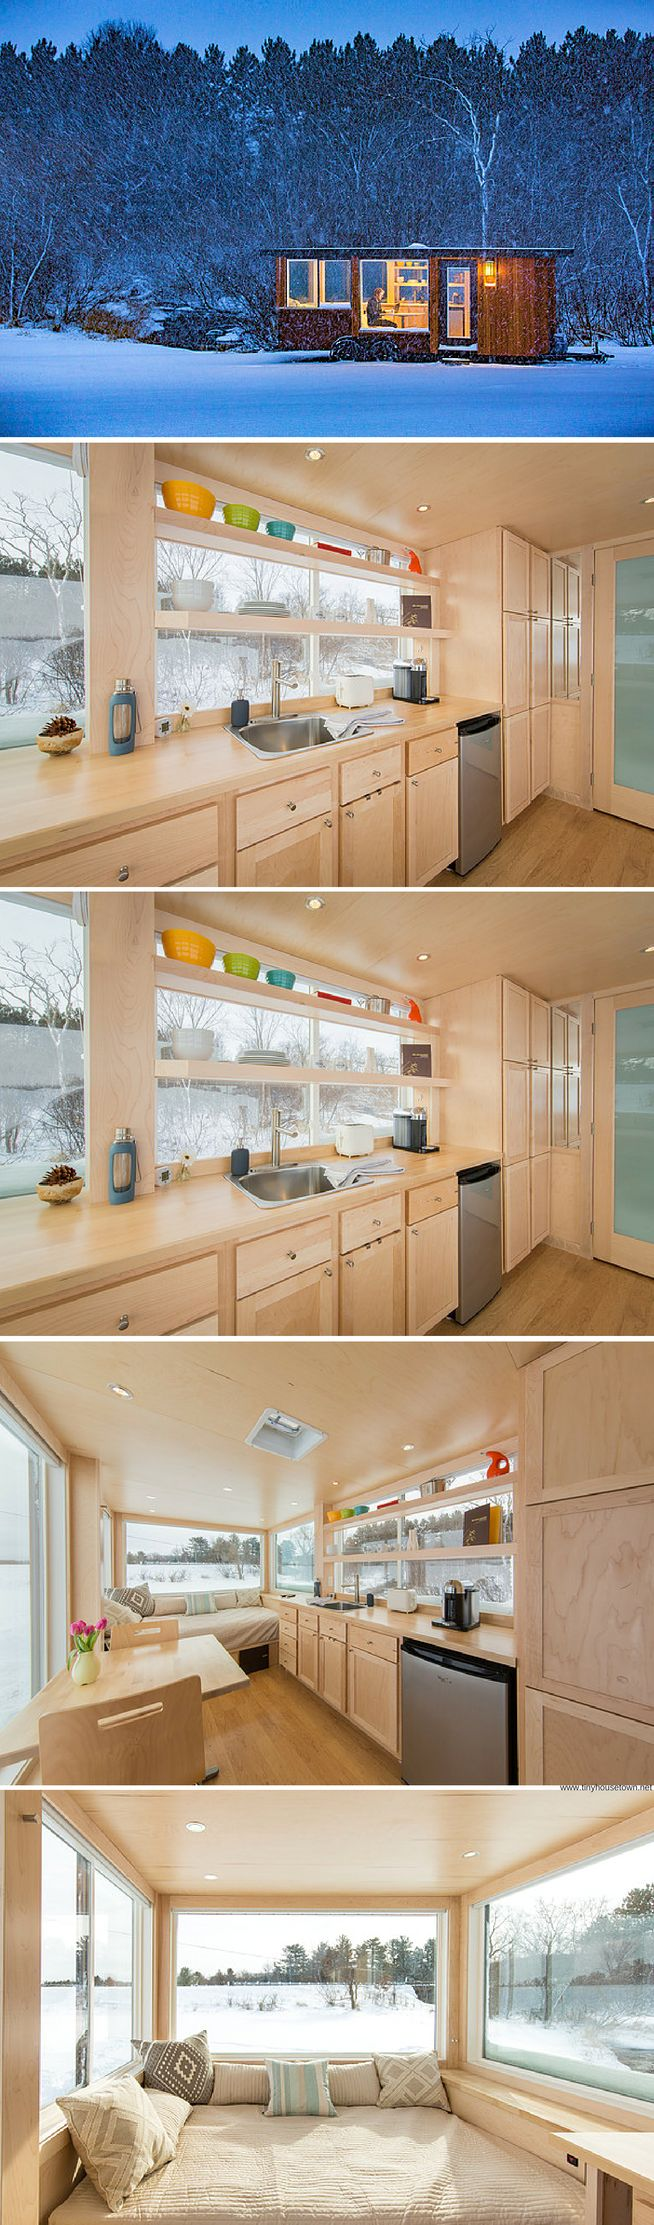 The Vista: a 160 sq ft tiny house